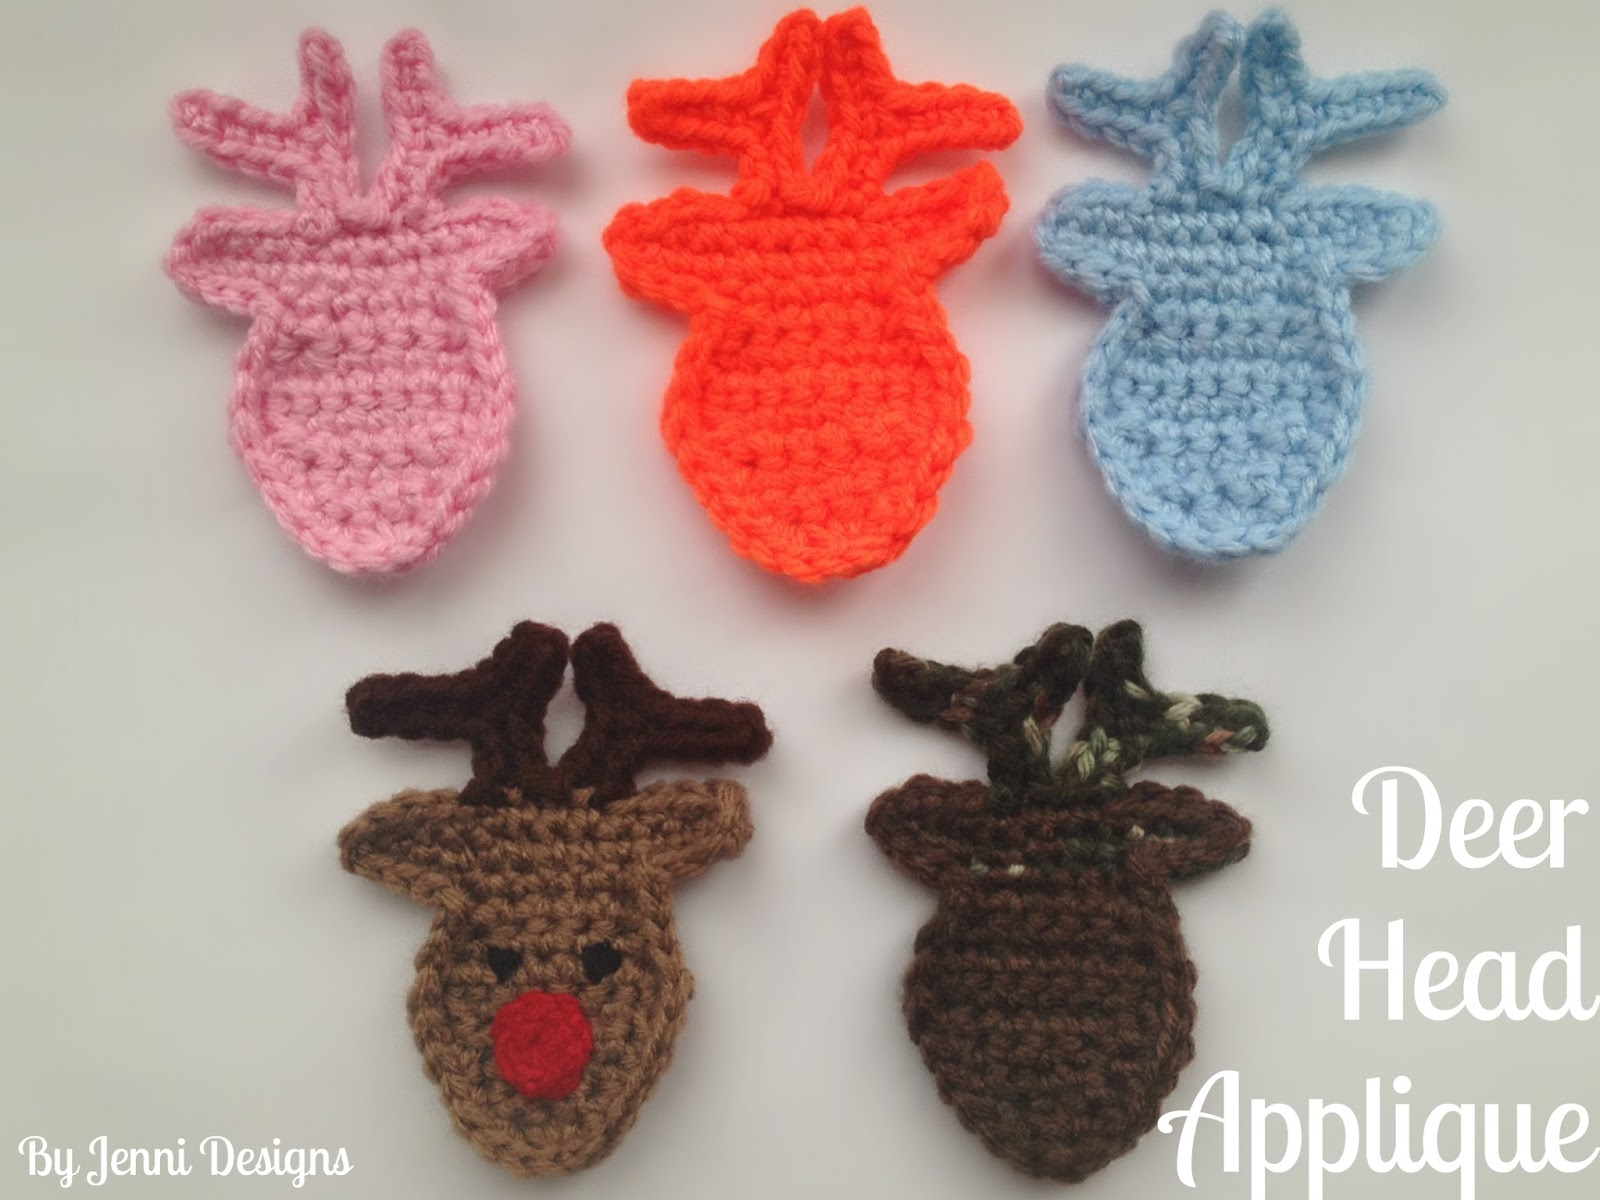 By Jenni Designs Free Crochet Pattern Tutorial Deer Head Applique